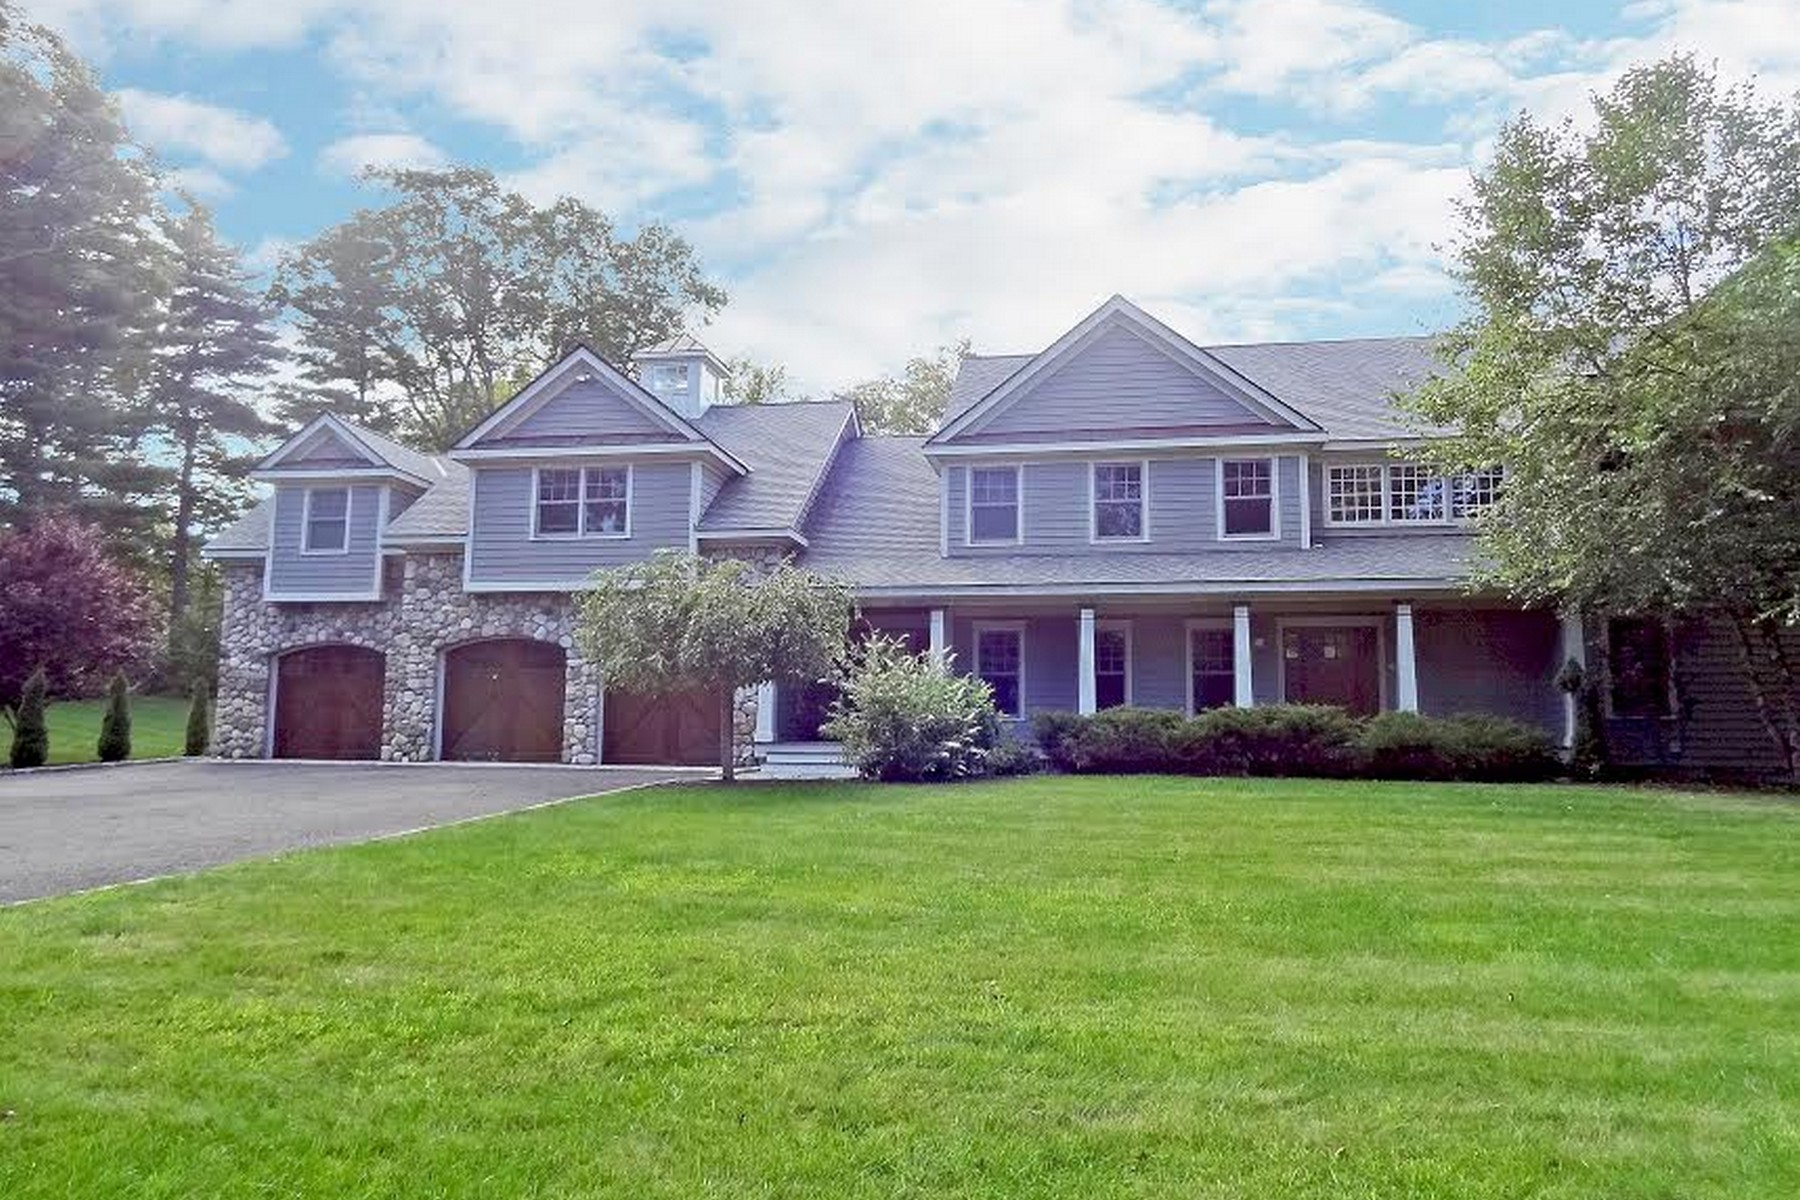 Property For Sale at Builder's Own Custom Built 2008 Colonial, with Fine Craftsmanship and Attention